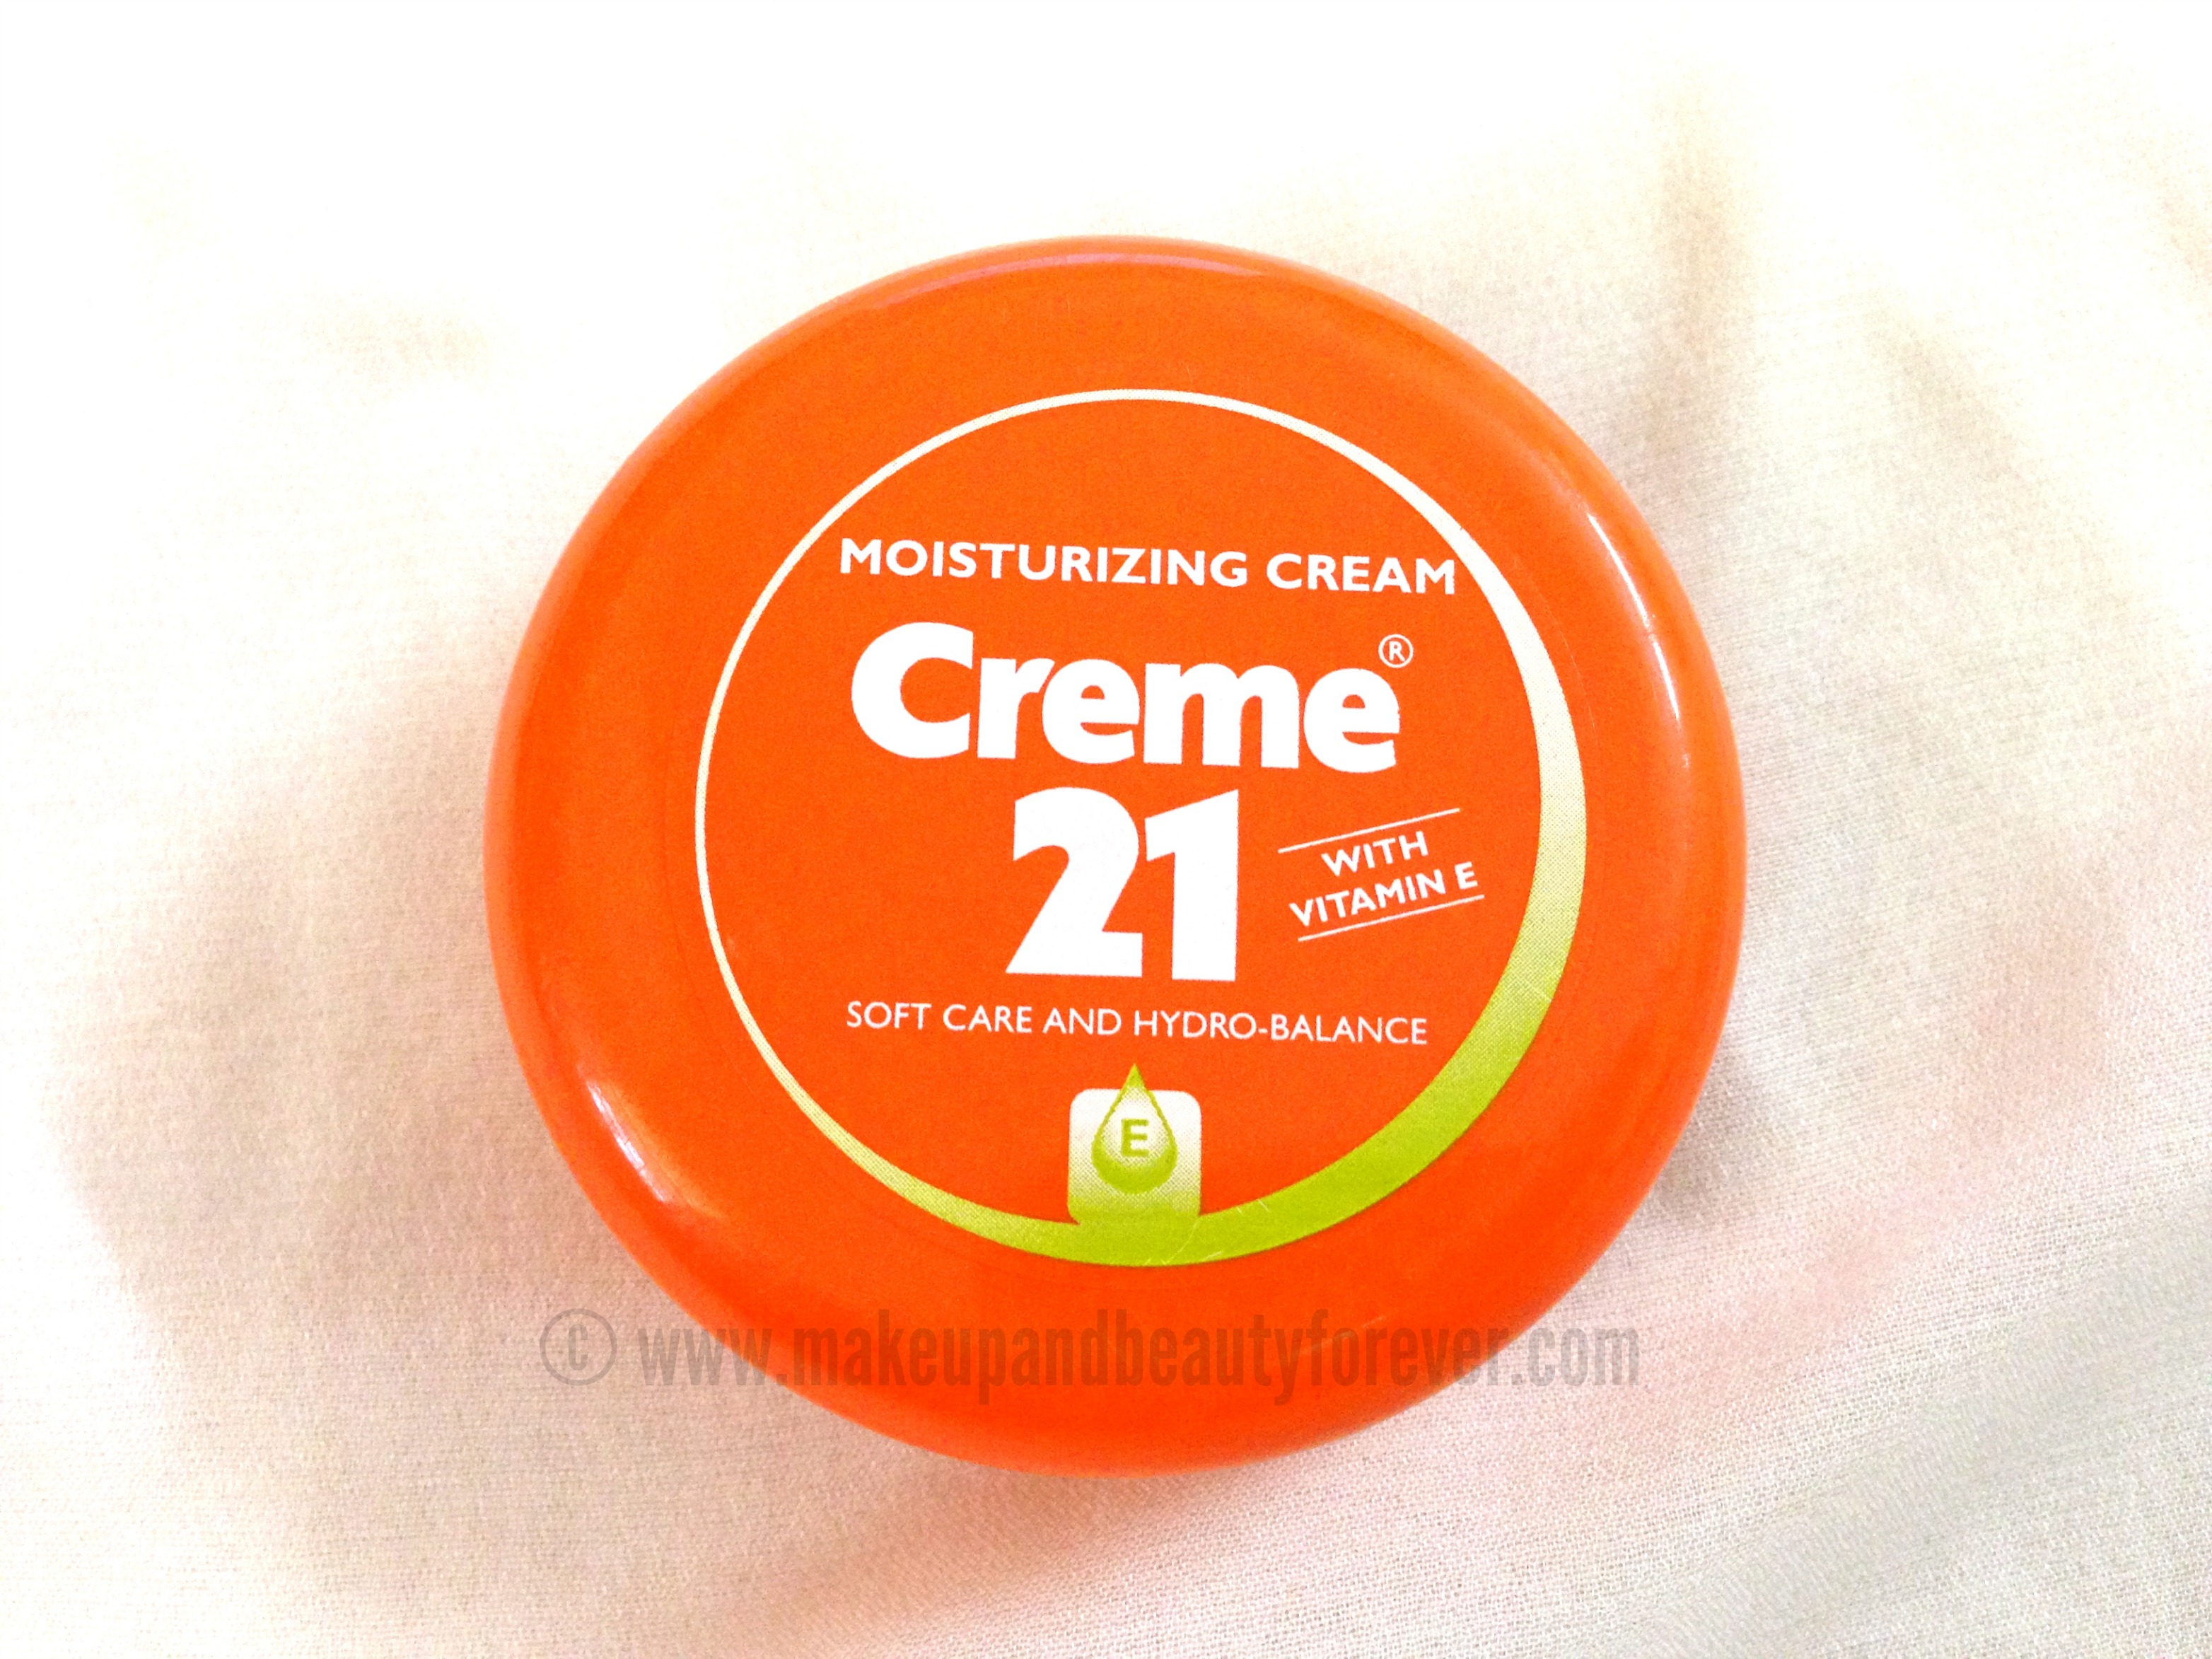 Creme 21 Moisturizing cream with Vitamin E